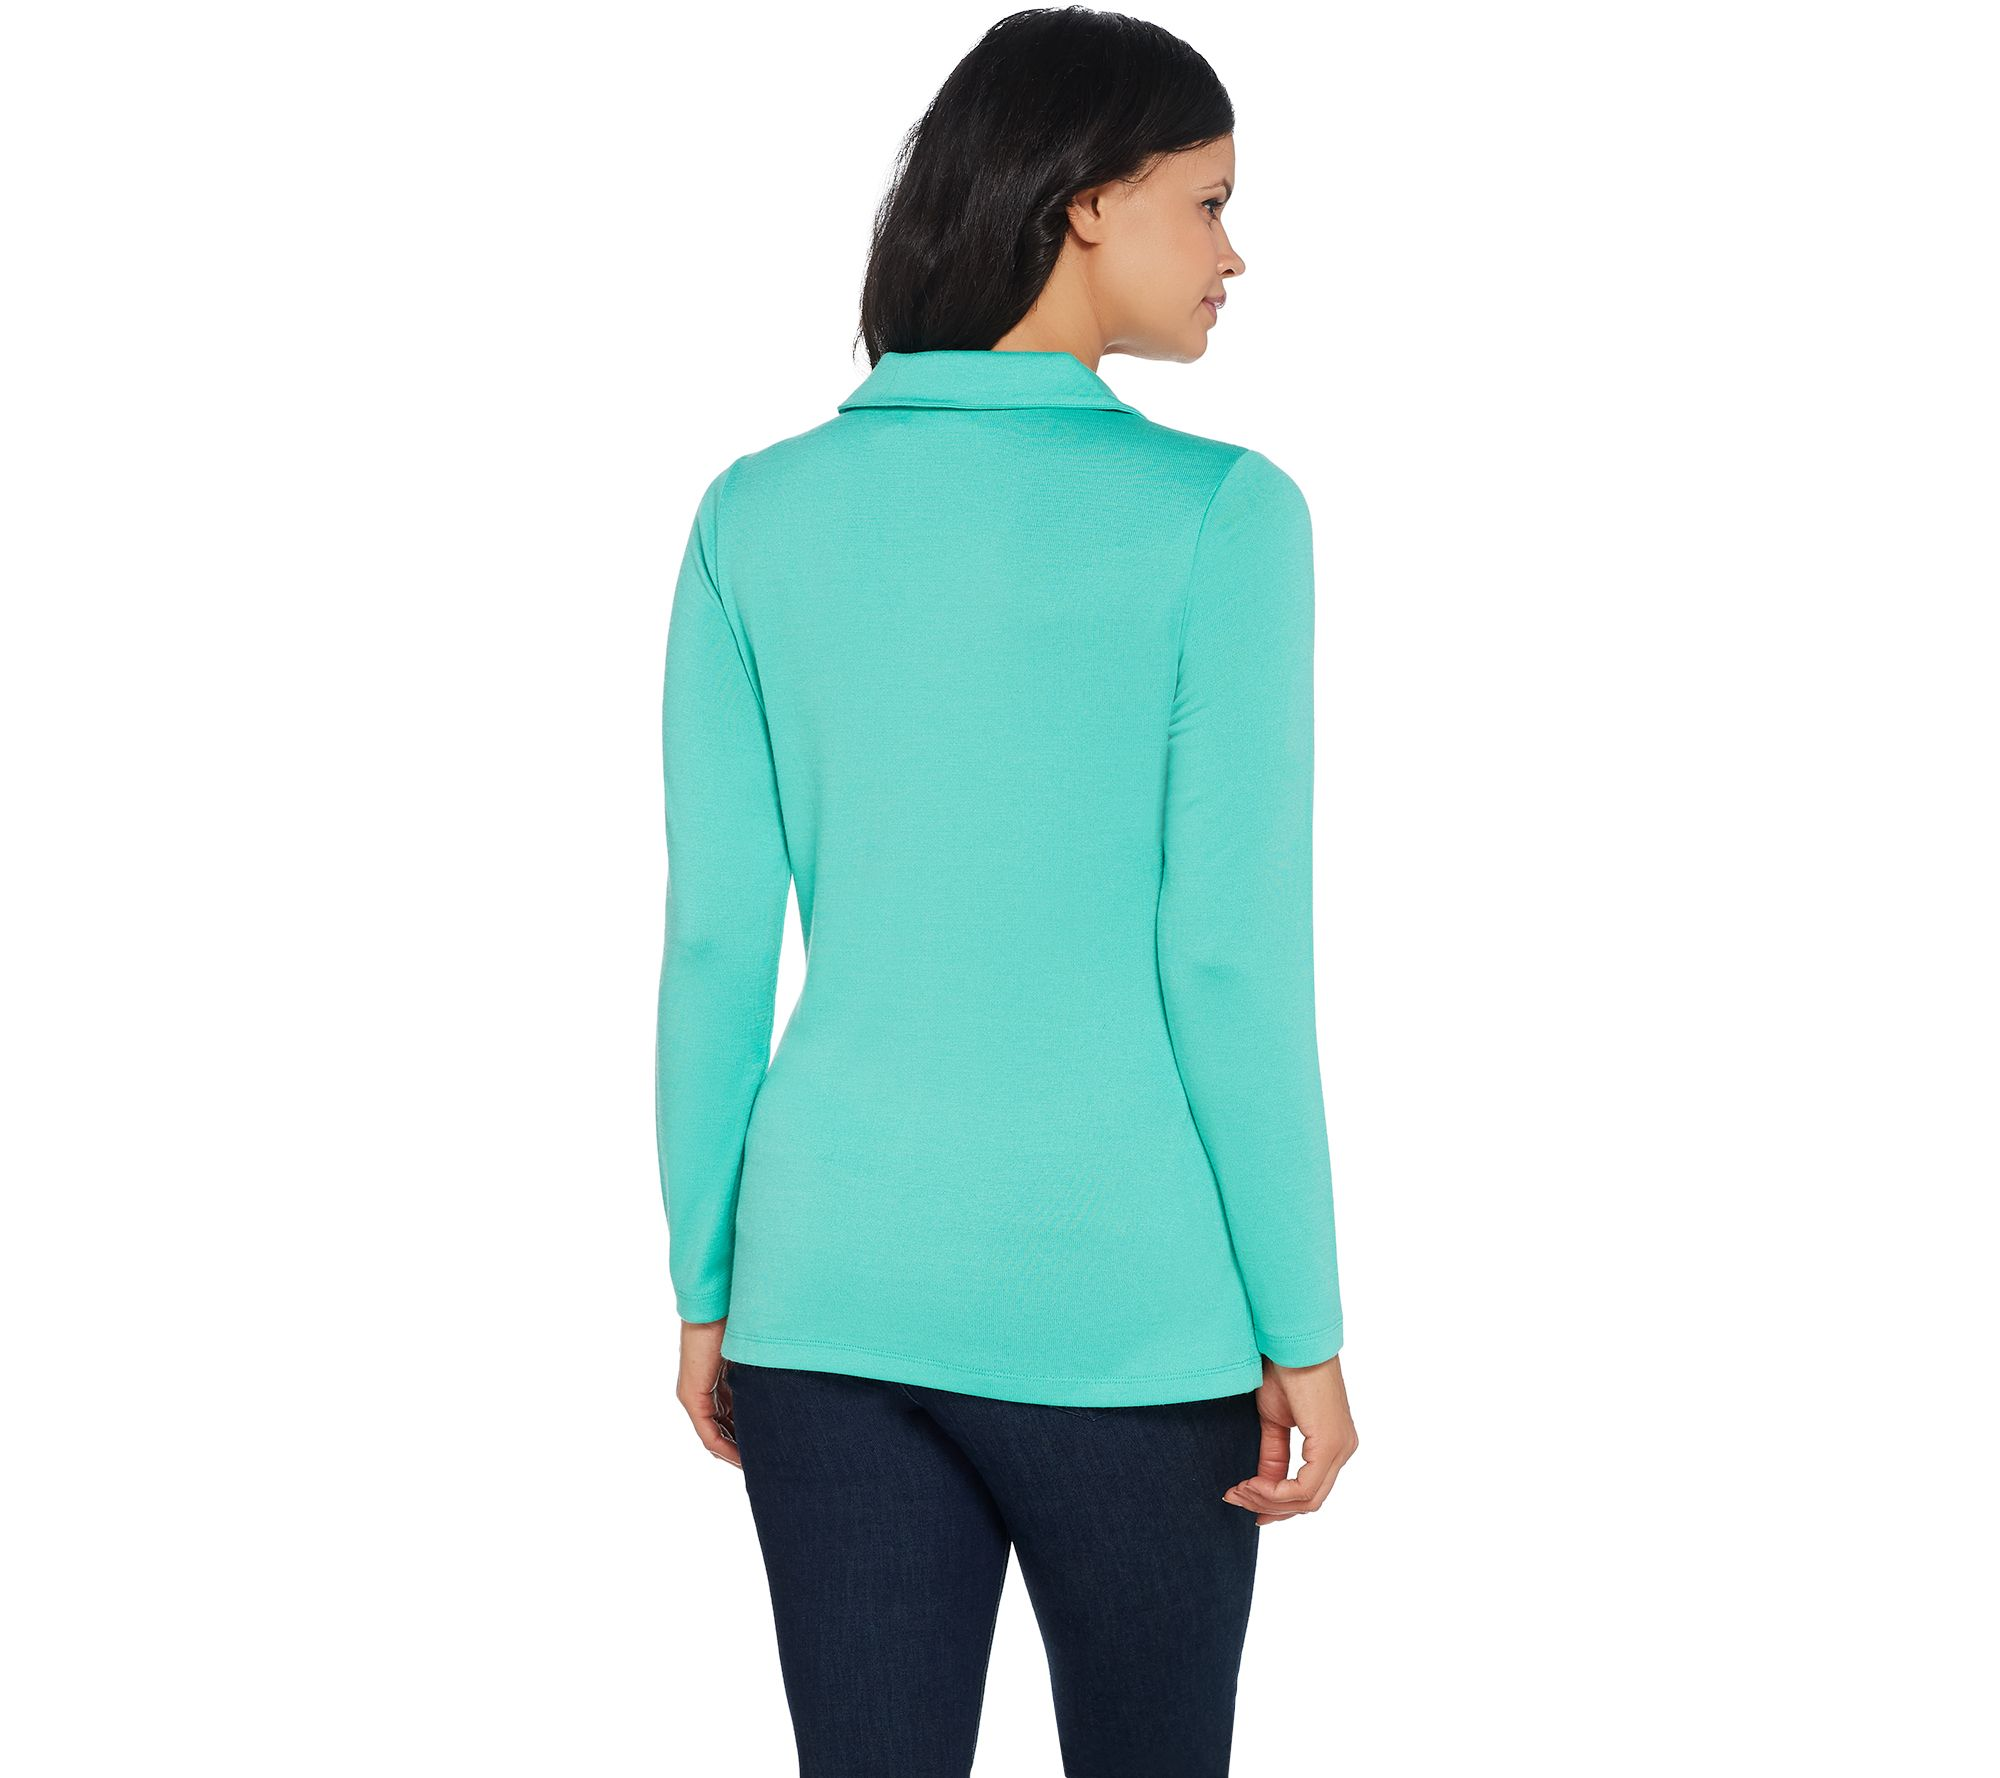 38cbda94cfa8 Denim & Co. Heavenly Jersey Long-Sleeve Top with Pleating Detail - Page 1 —  QVC.com